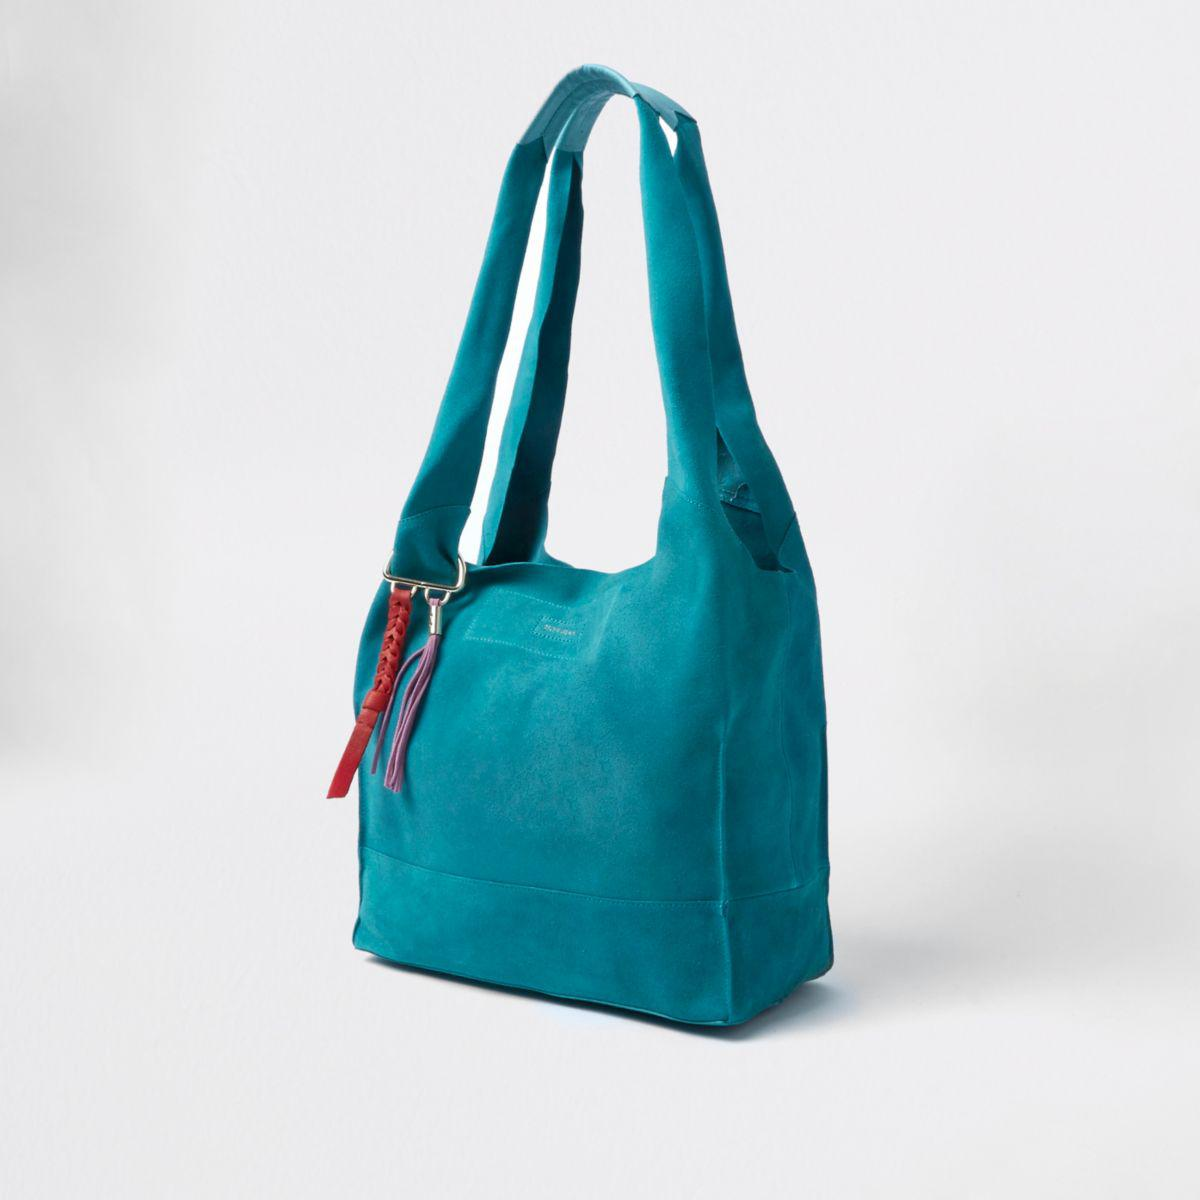 River Island Teal Blue Suede Slouch Tote Bag Teal Blue Suede Slouch Tote Bag in Green